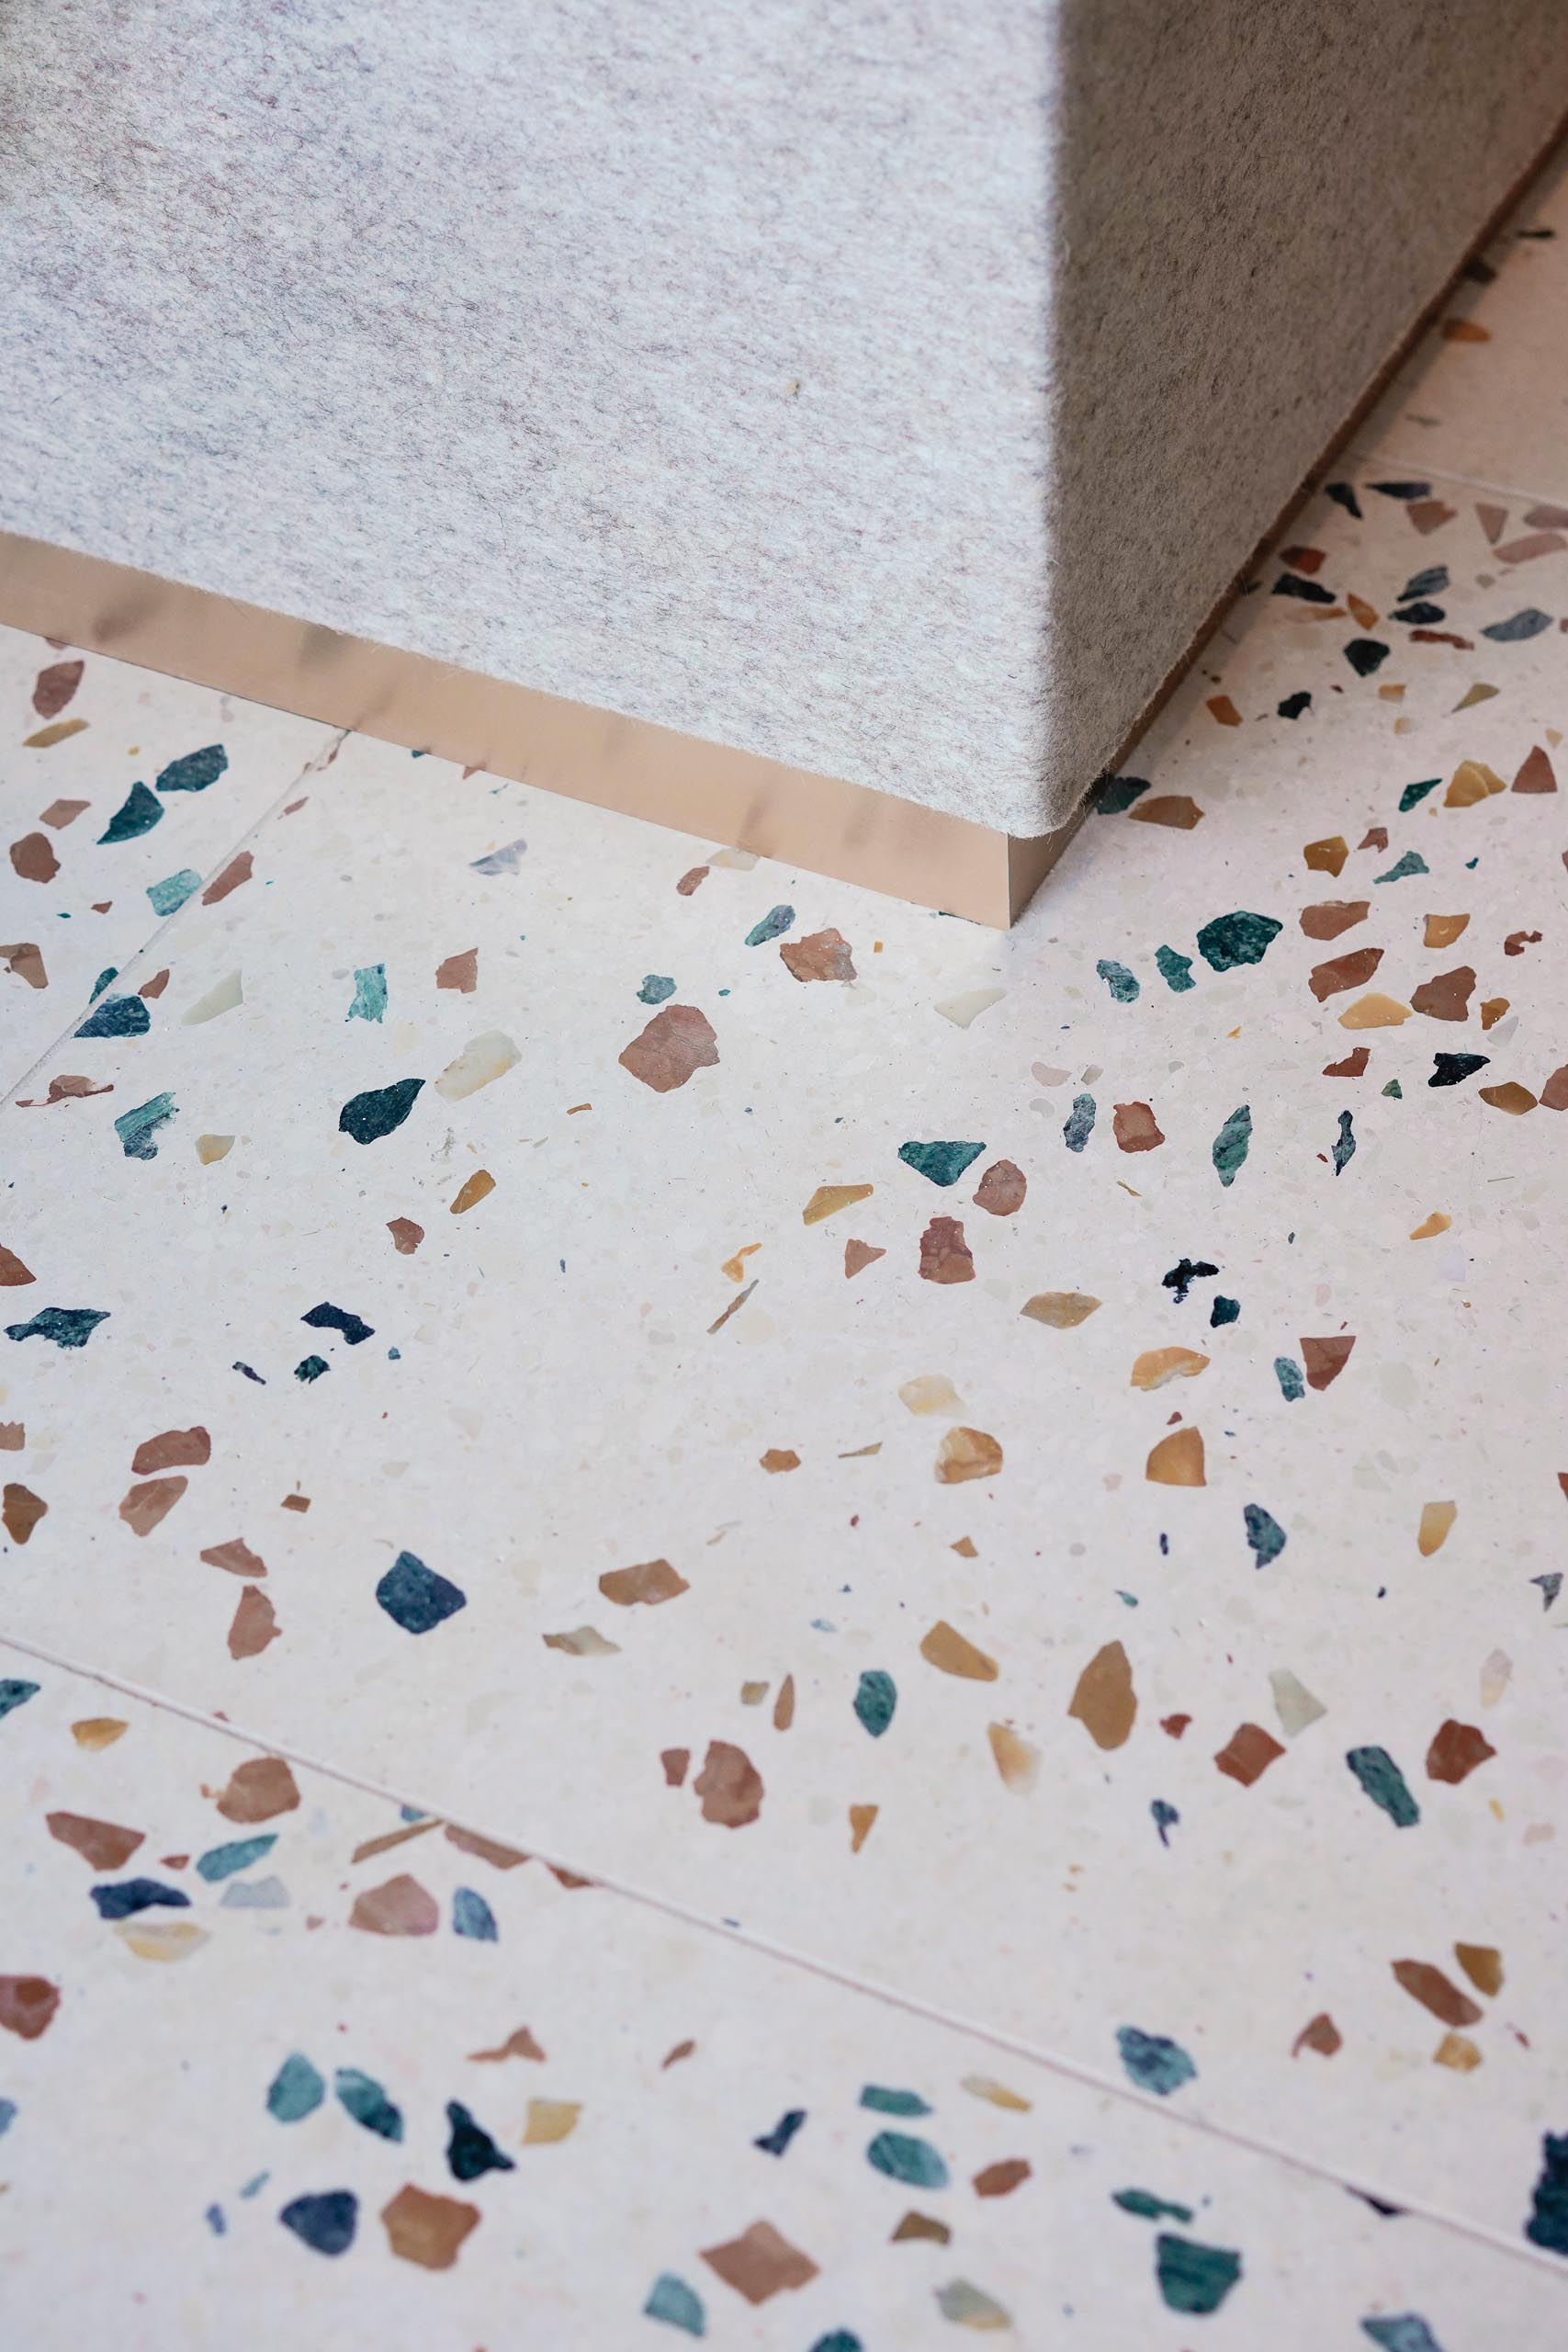 A modern interior with colorful terrazzo tile floors.